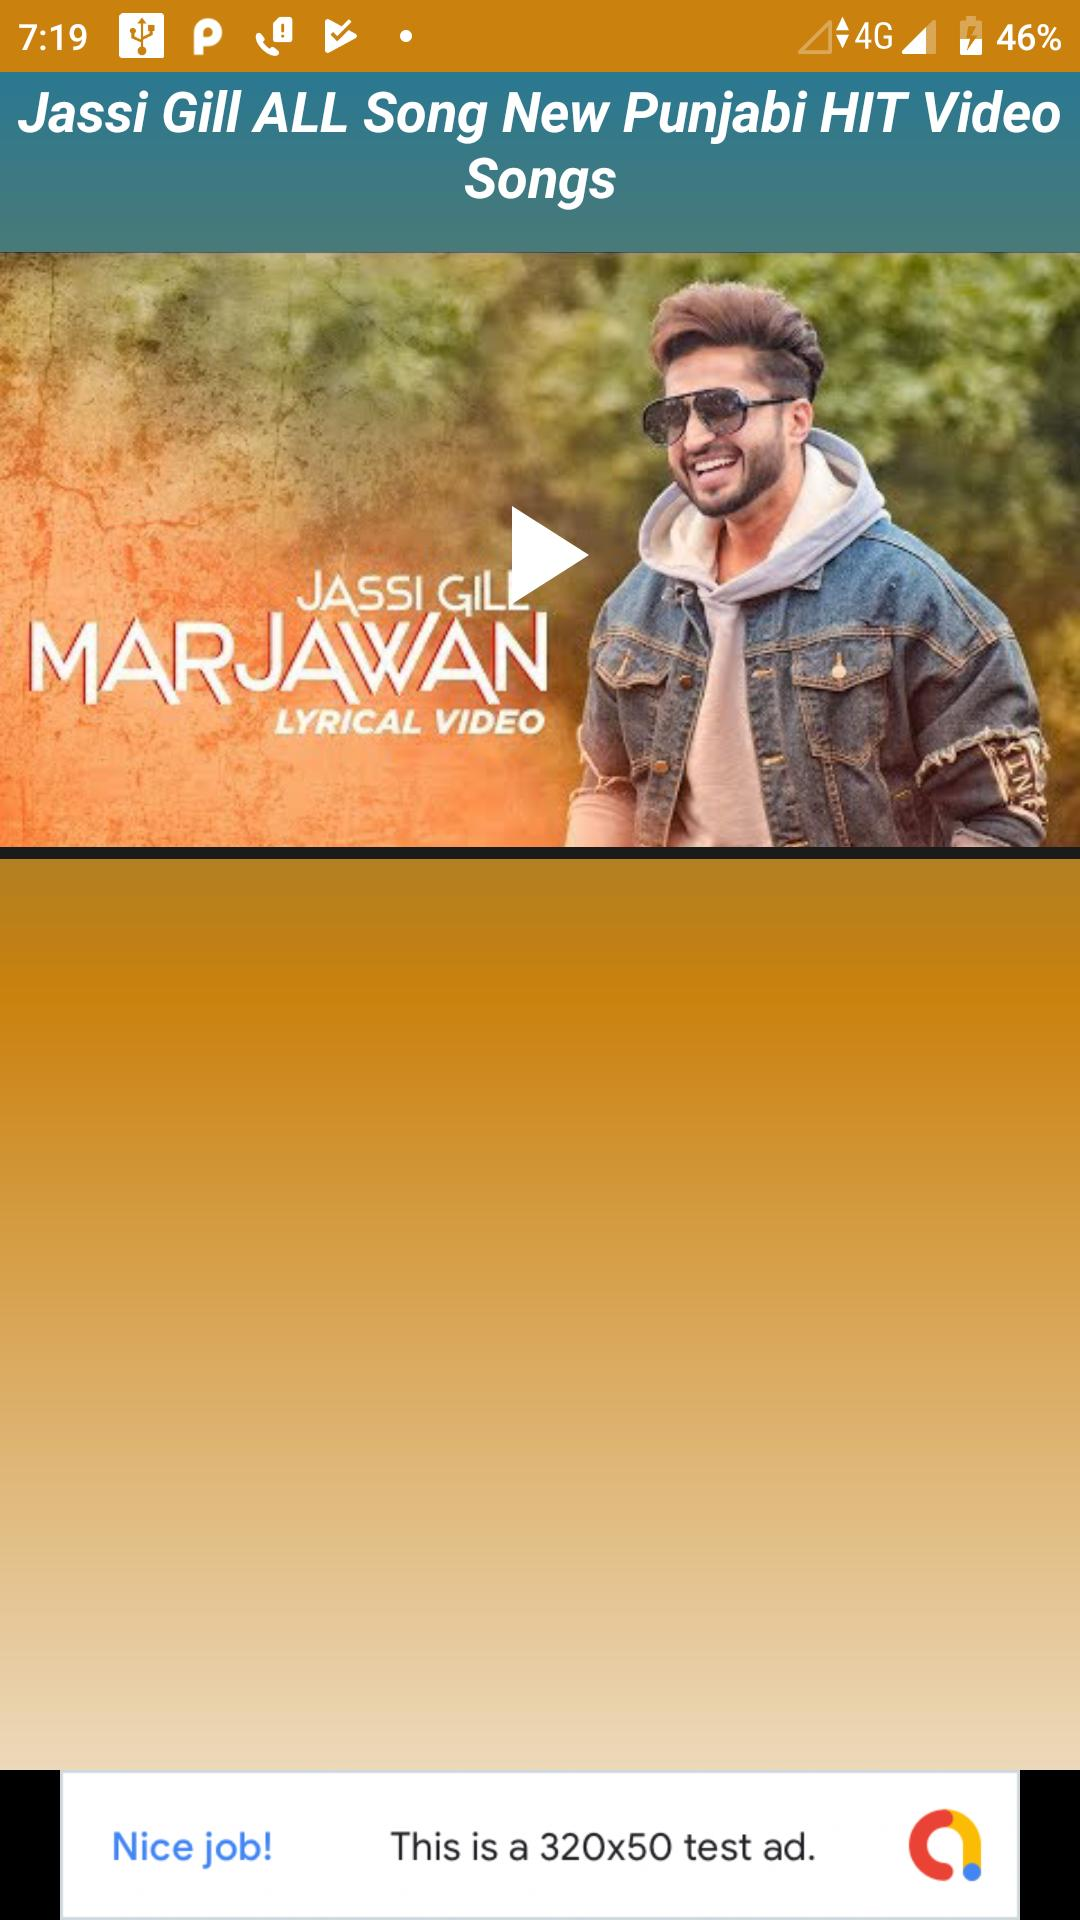 Jassi Gill ALL Song - New Punjabi Video Songs for Android